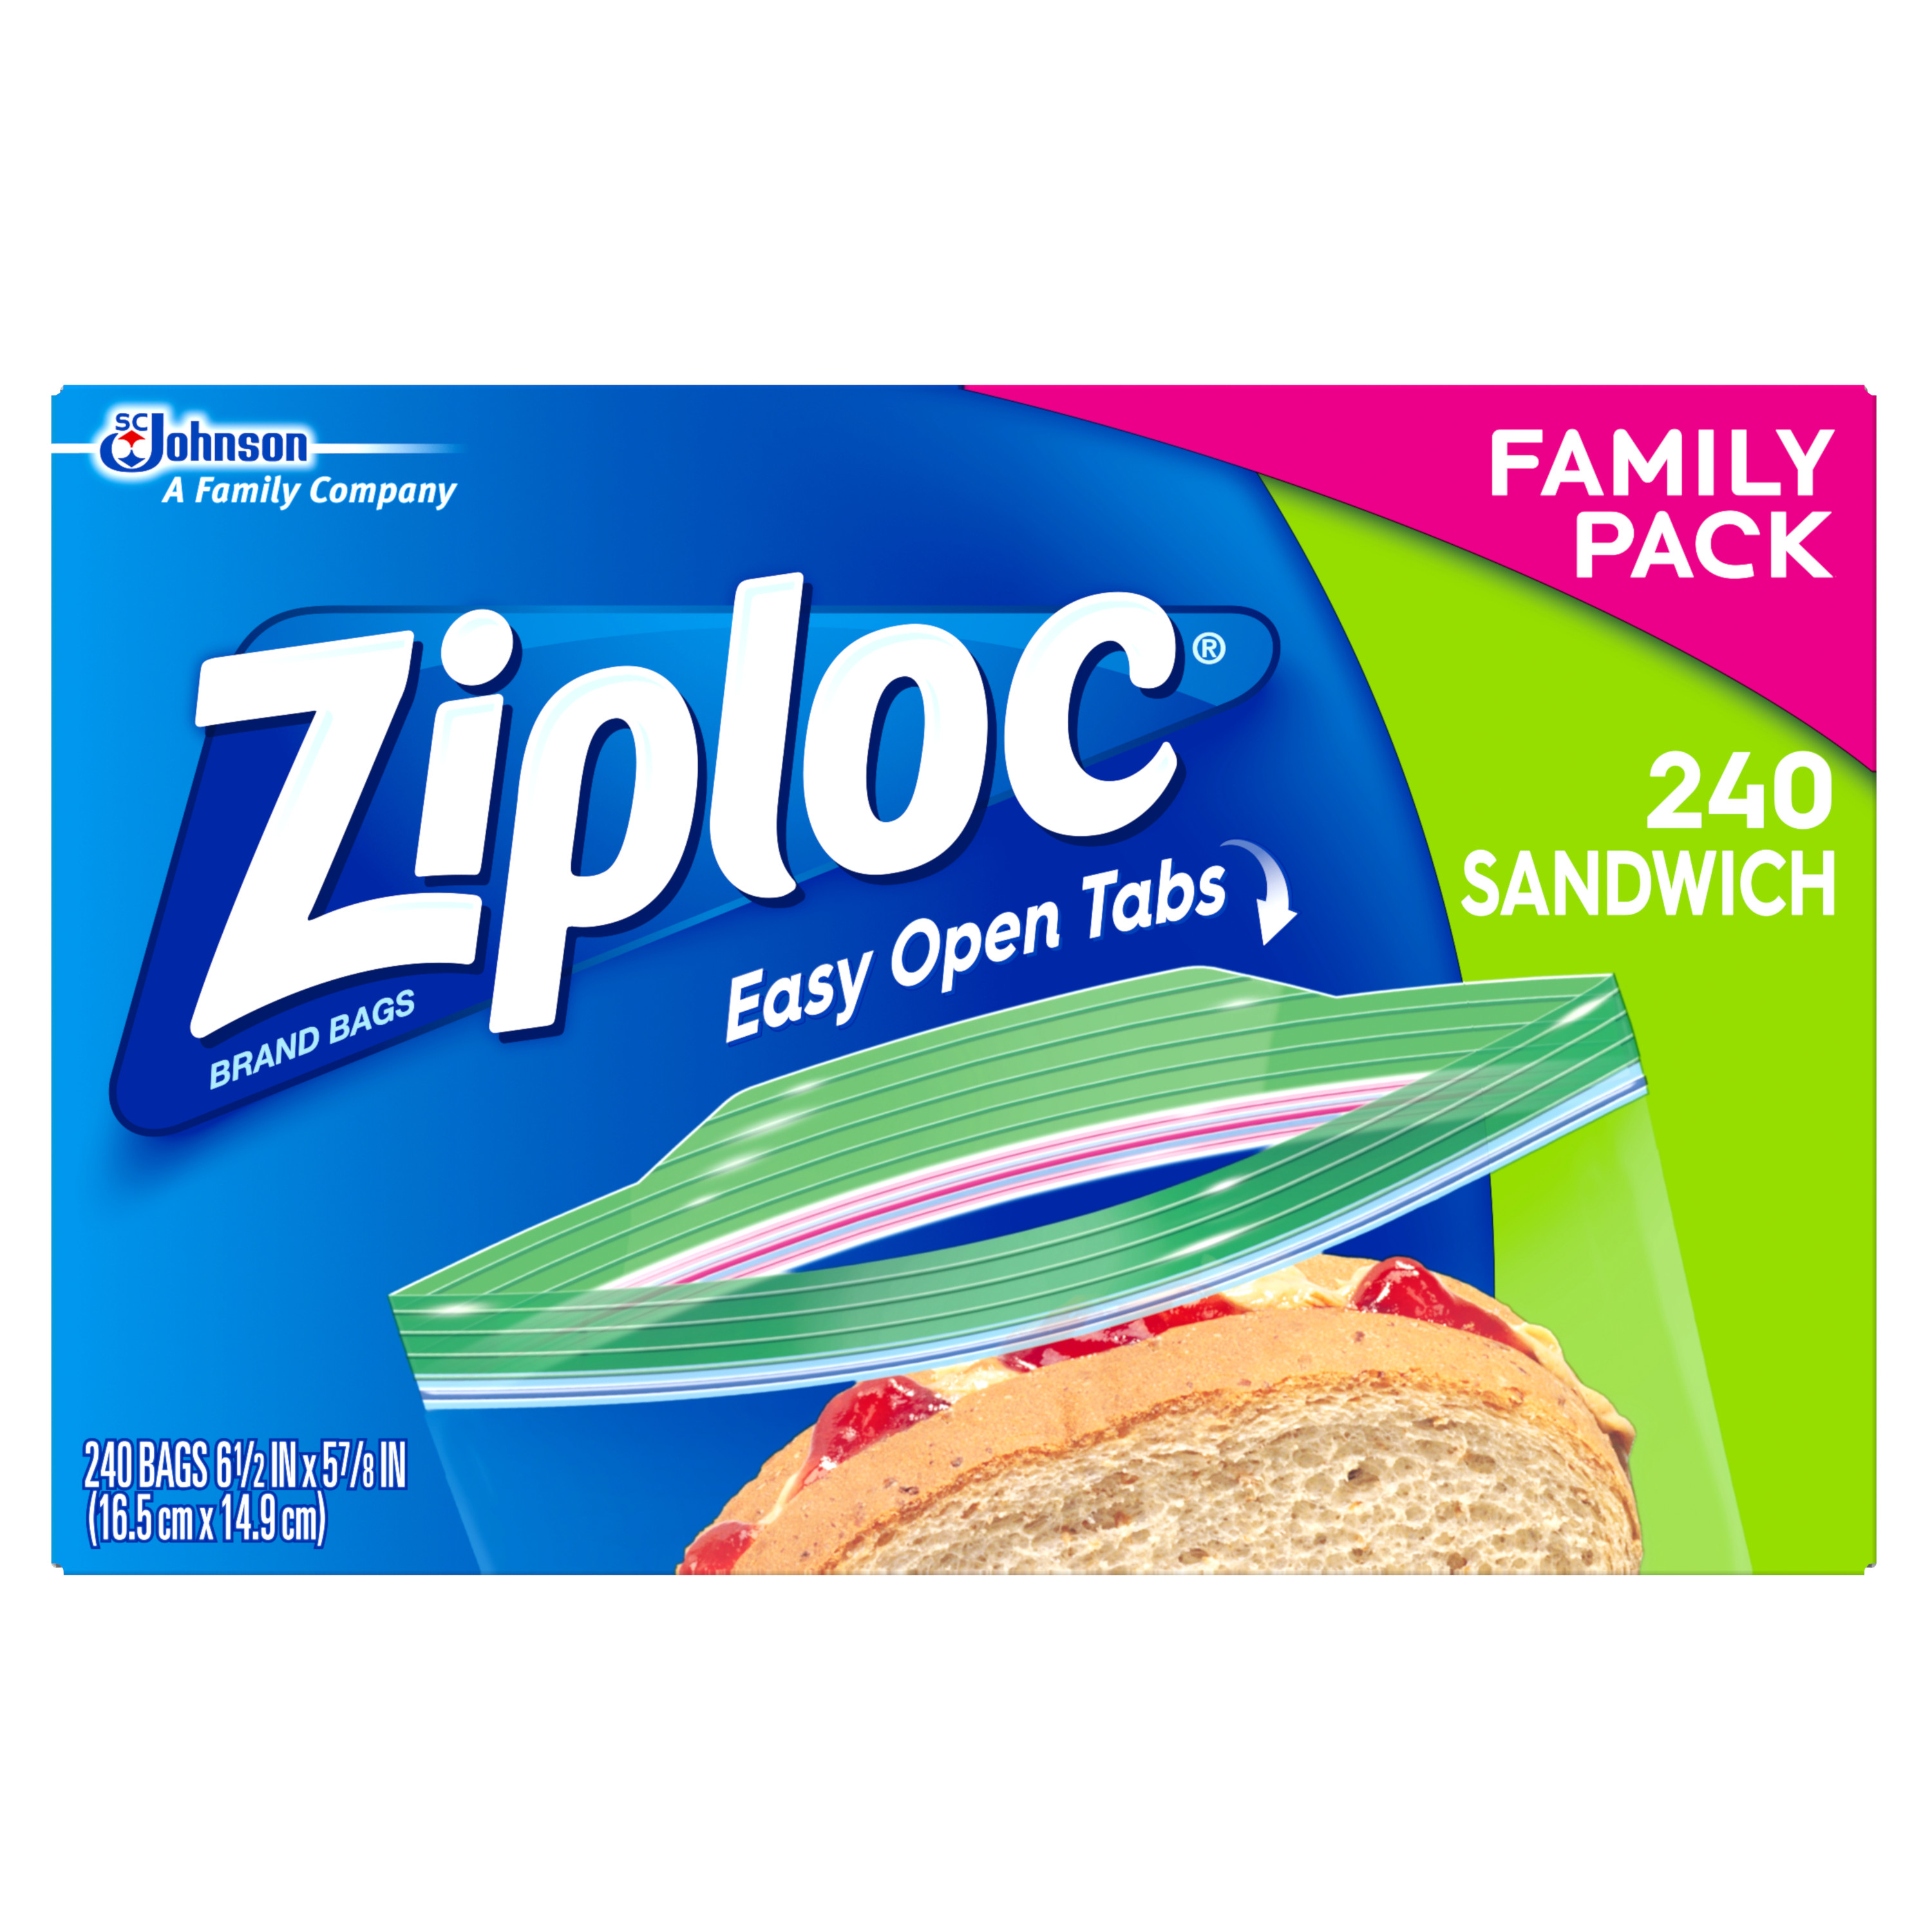 Ziploc Sandwich Bag, 240 count